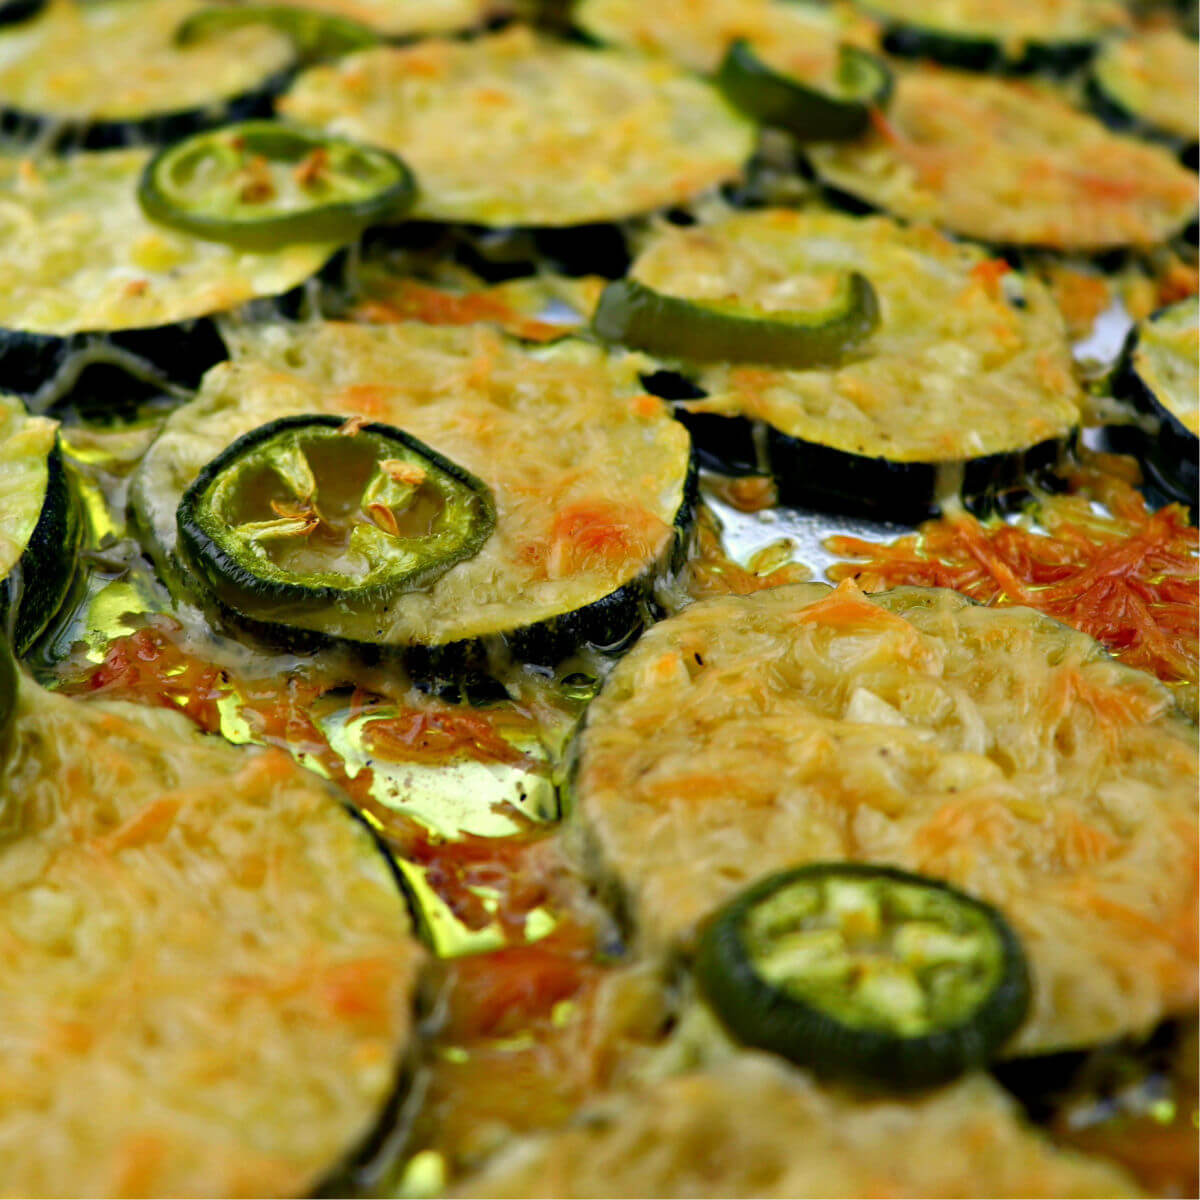 Pan of low carb garlic parmesan zuccini